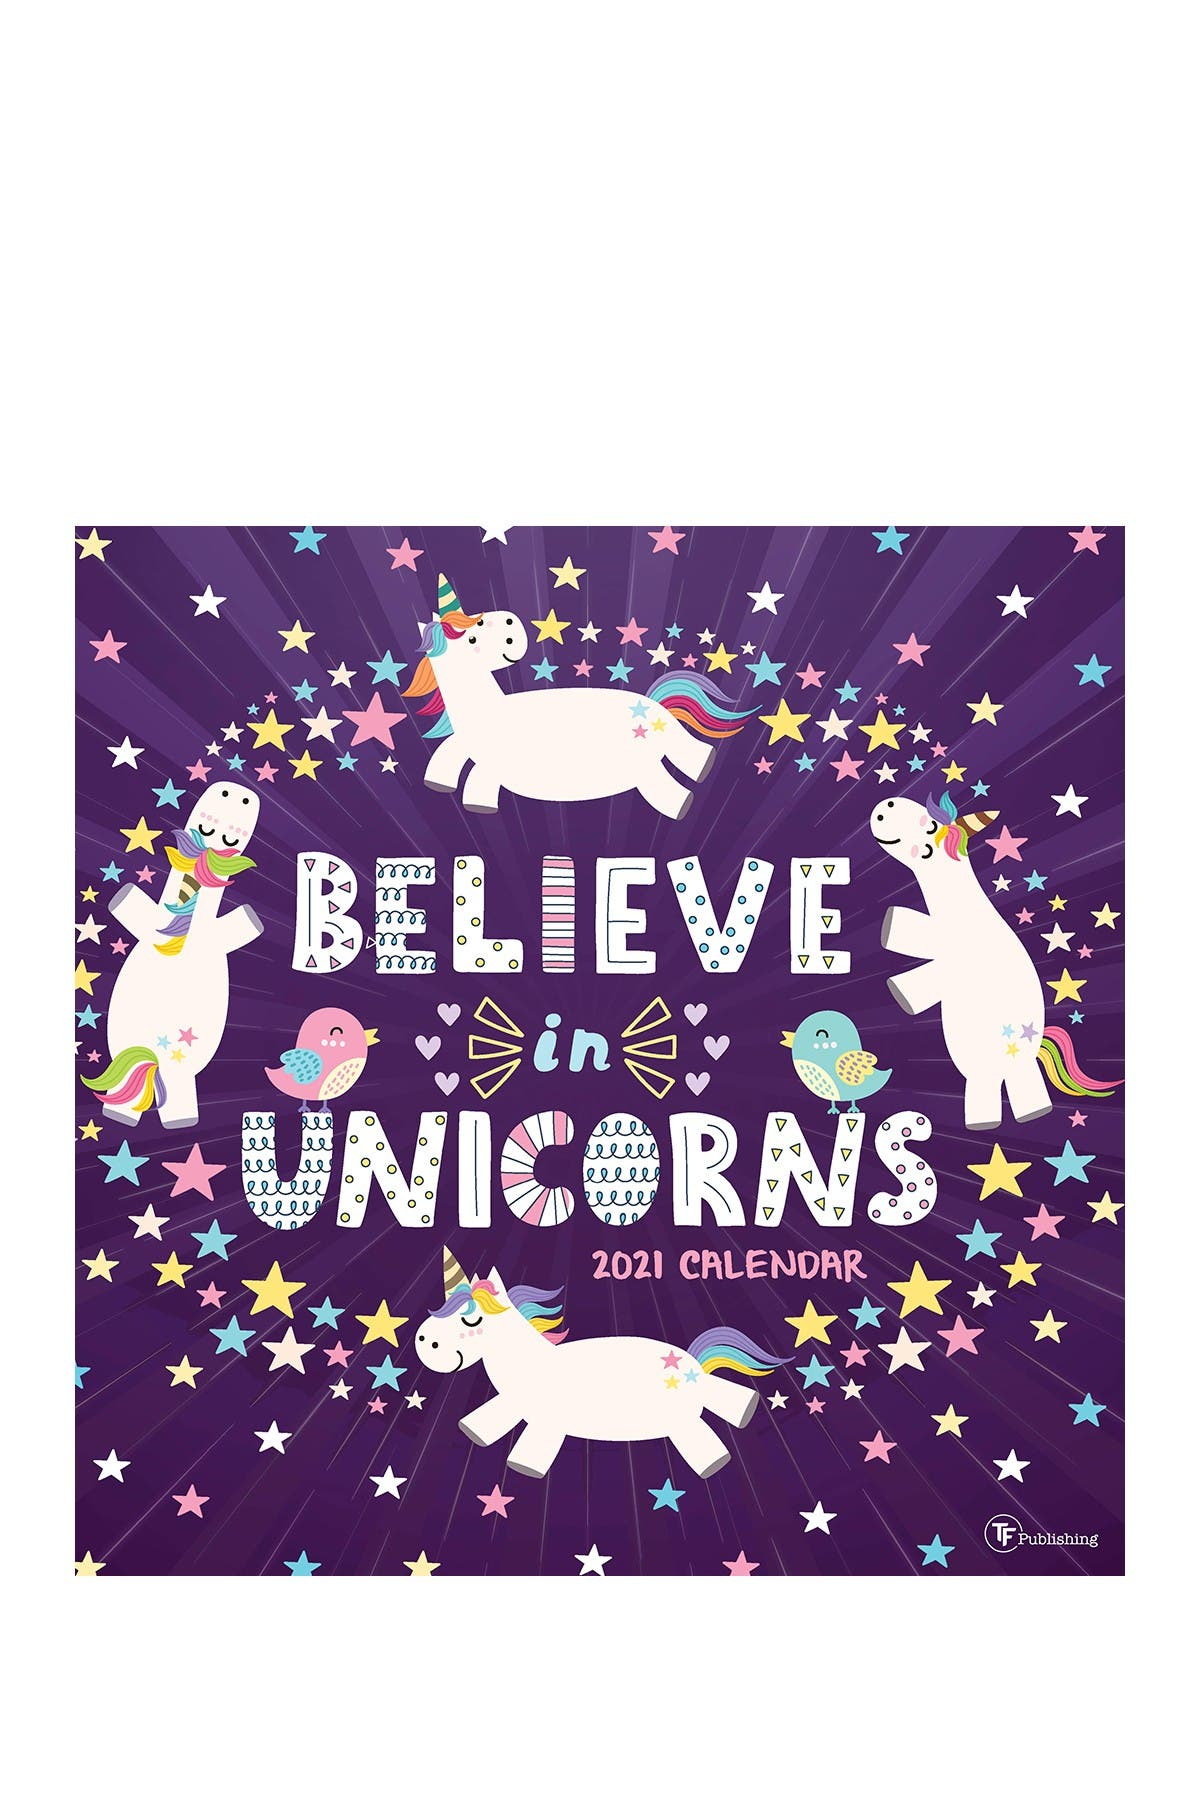 Image of TF Publishing 2021 Unicorns Wall Calendar